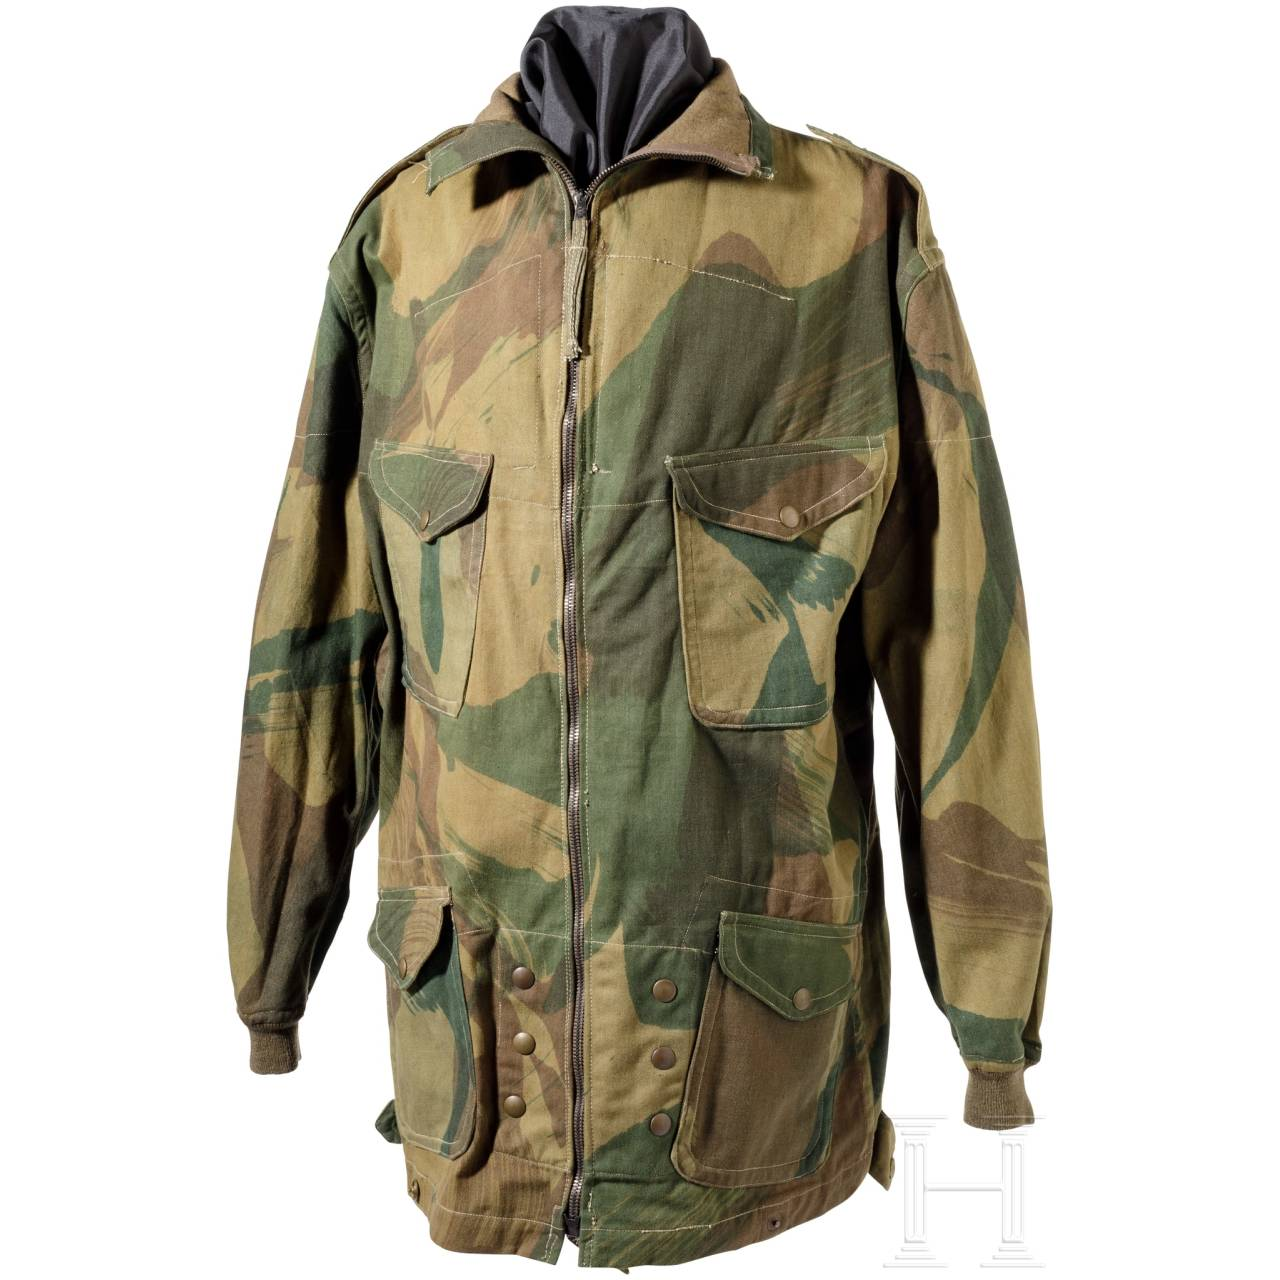 A camouflage clothing for paratroopers in World War II